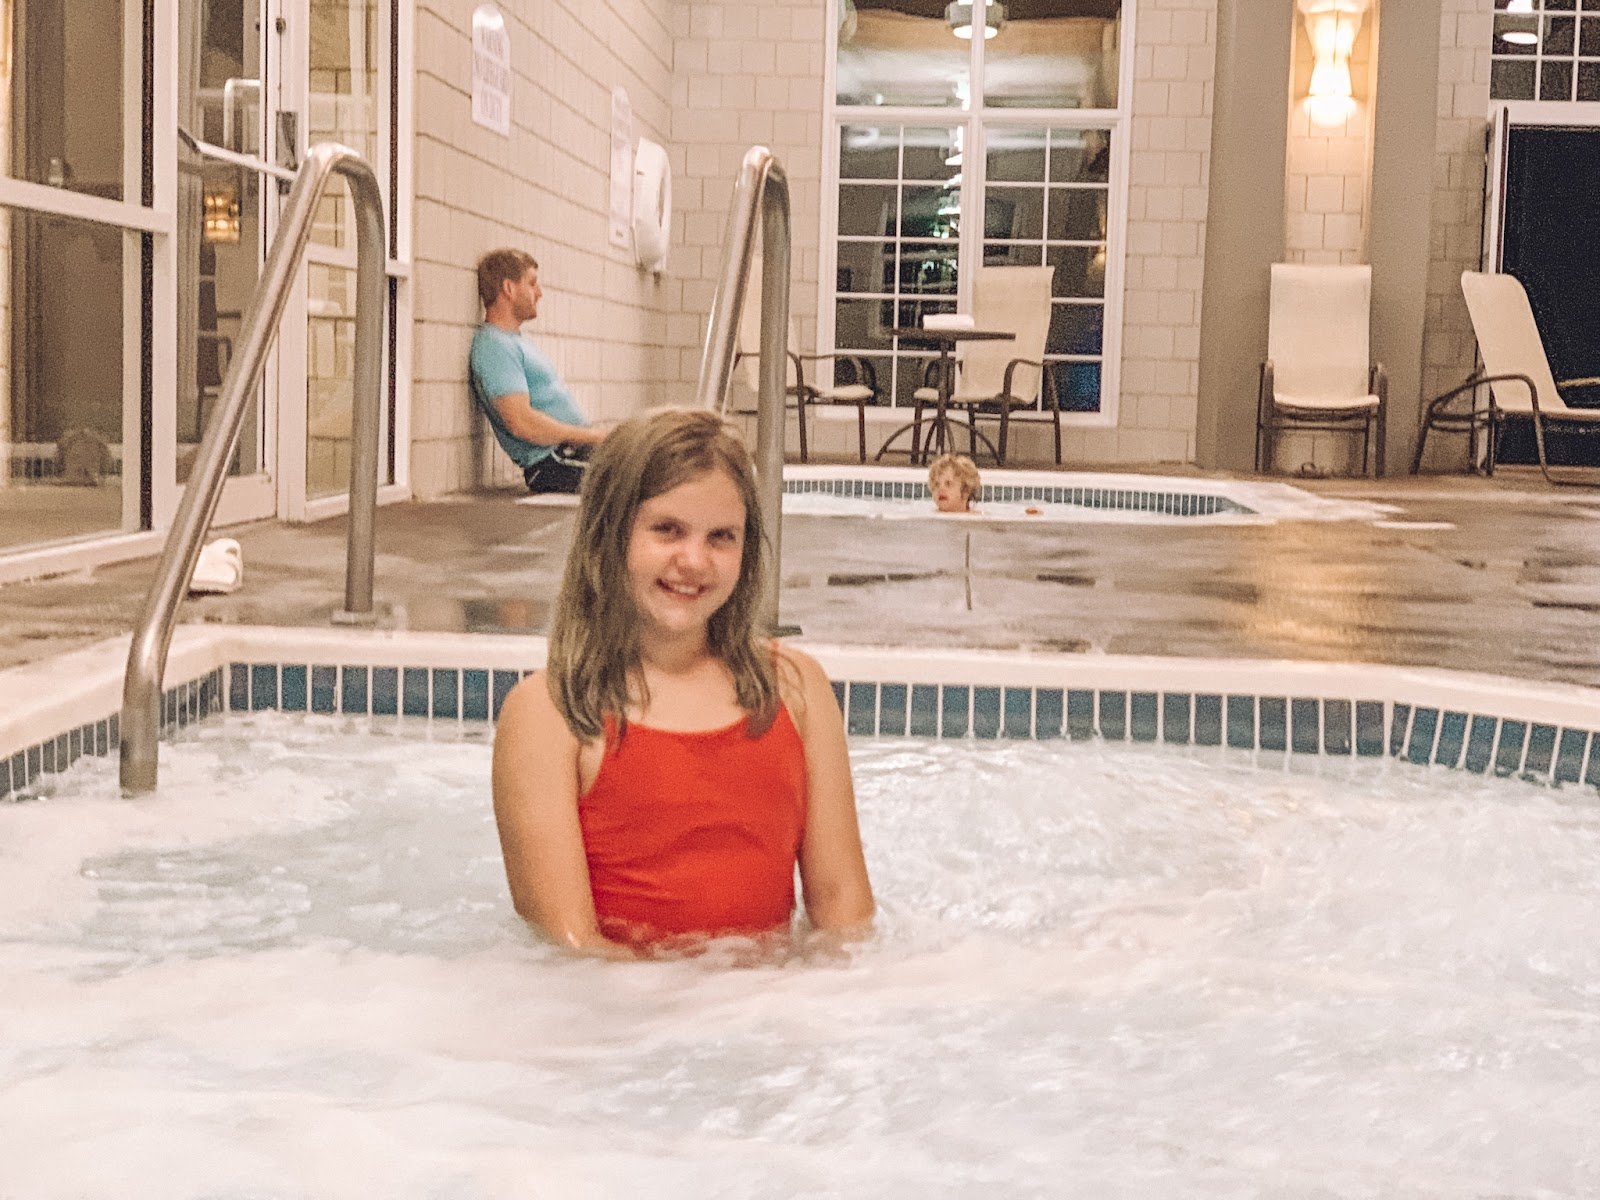 Stay at Arbor Day Farms' Lied Lodge | Lied Lodge | Arbor Day Foundation | Arbor Day Lodge | Nebraska City, Nebraska | Where to stay in Nebraska City | Apple picking Arbor Day Farms | family road trip | Midwest road trip | best places to see fall leaves | Lied Lodge Hot Tub